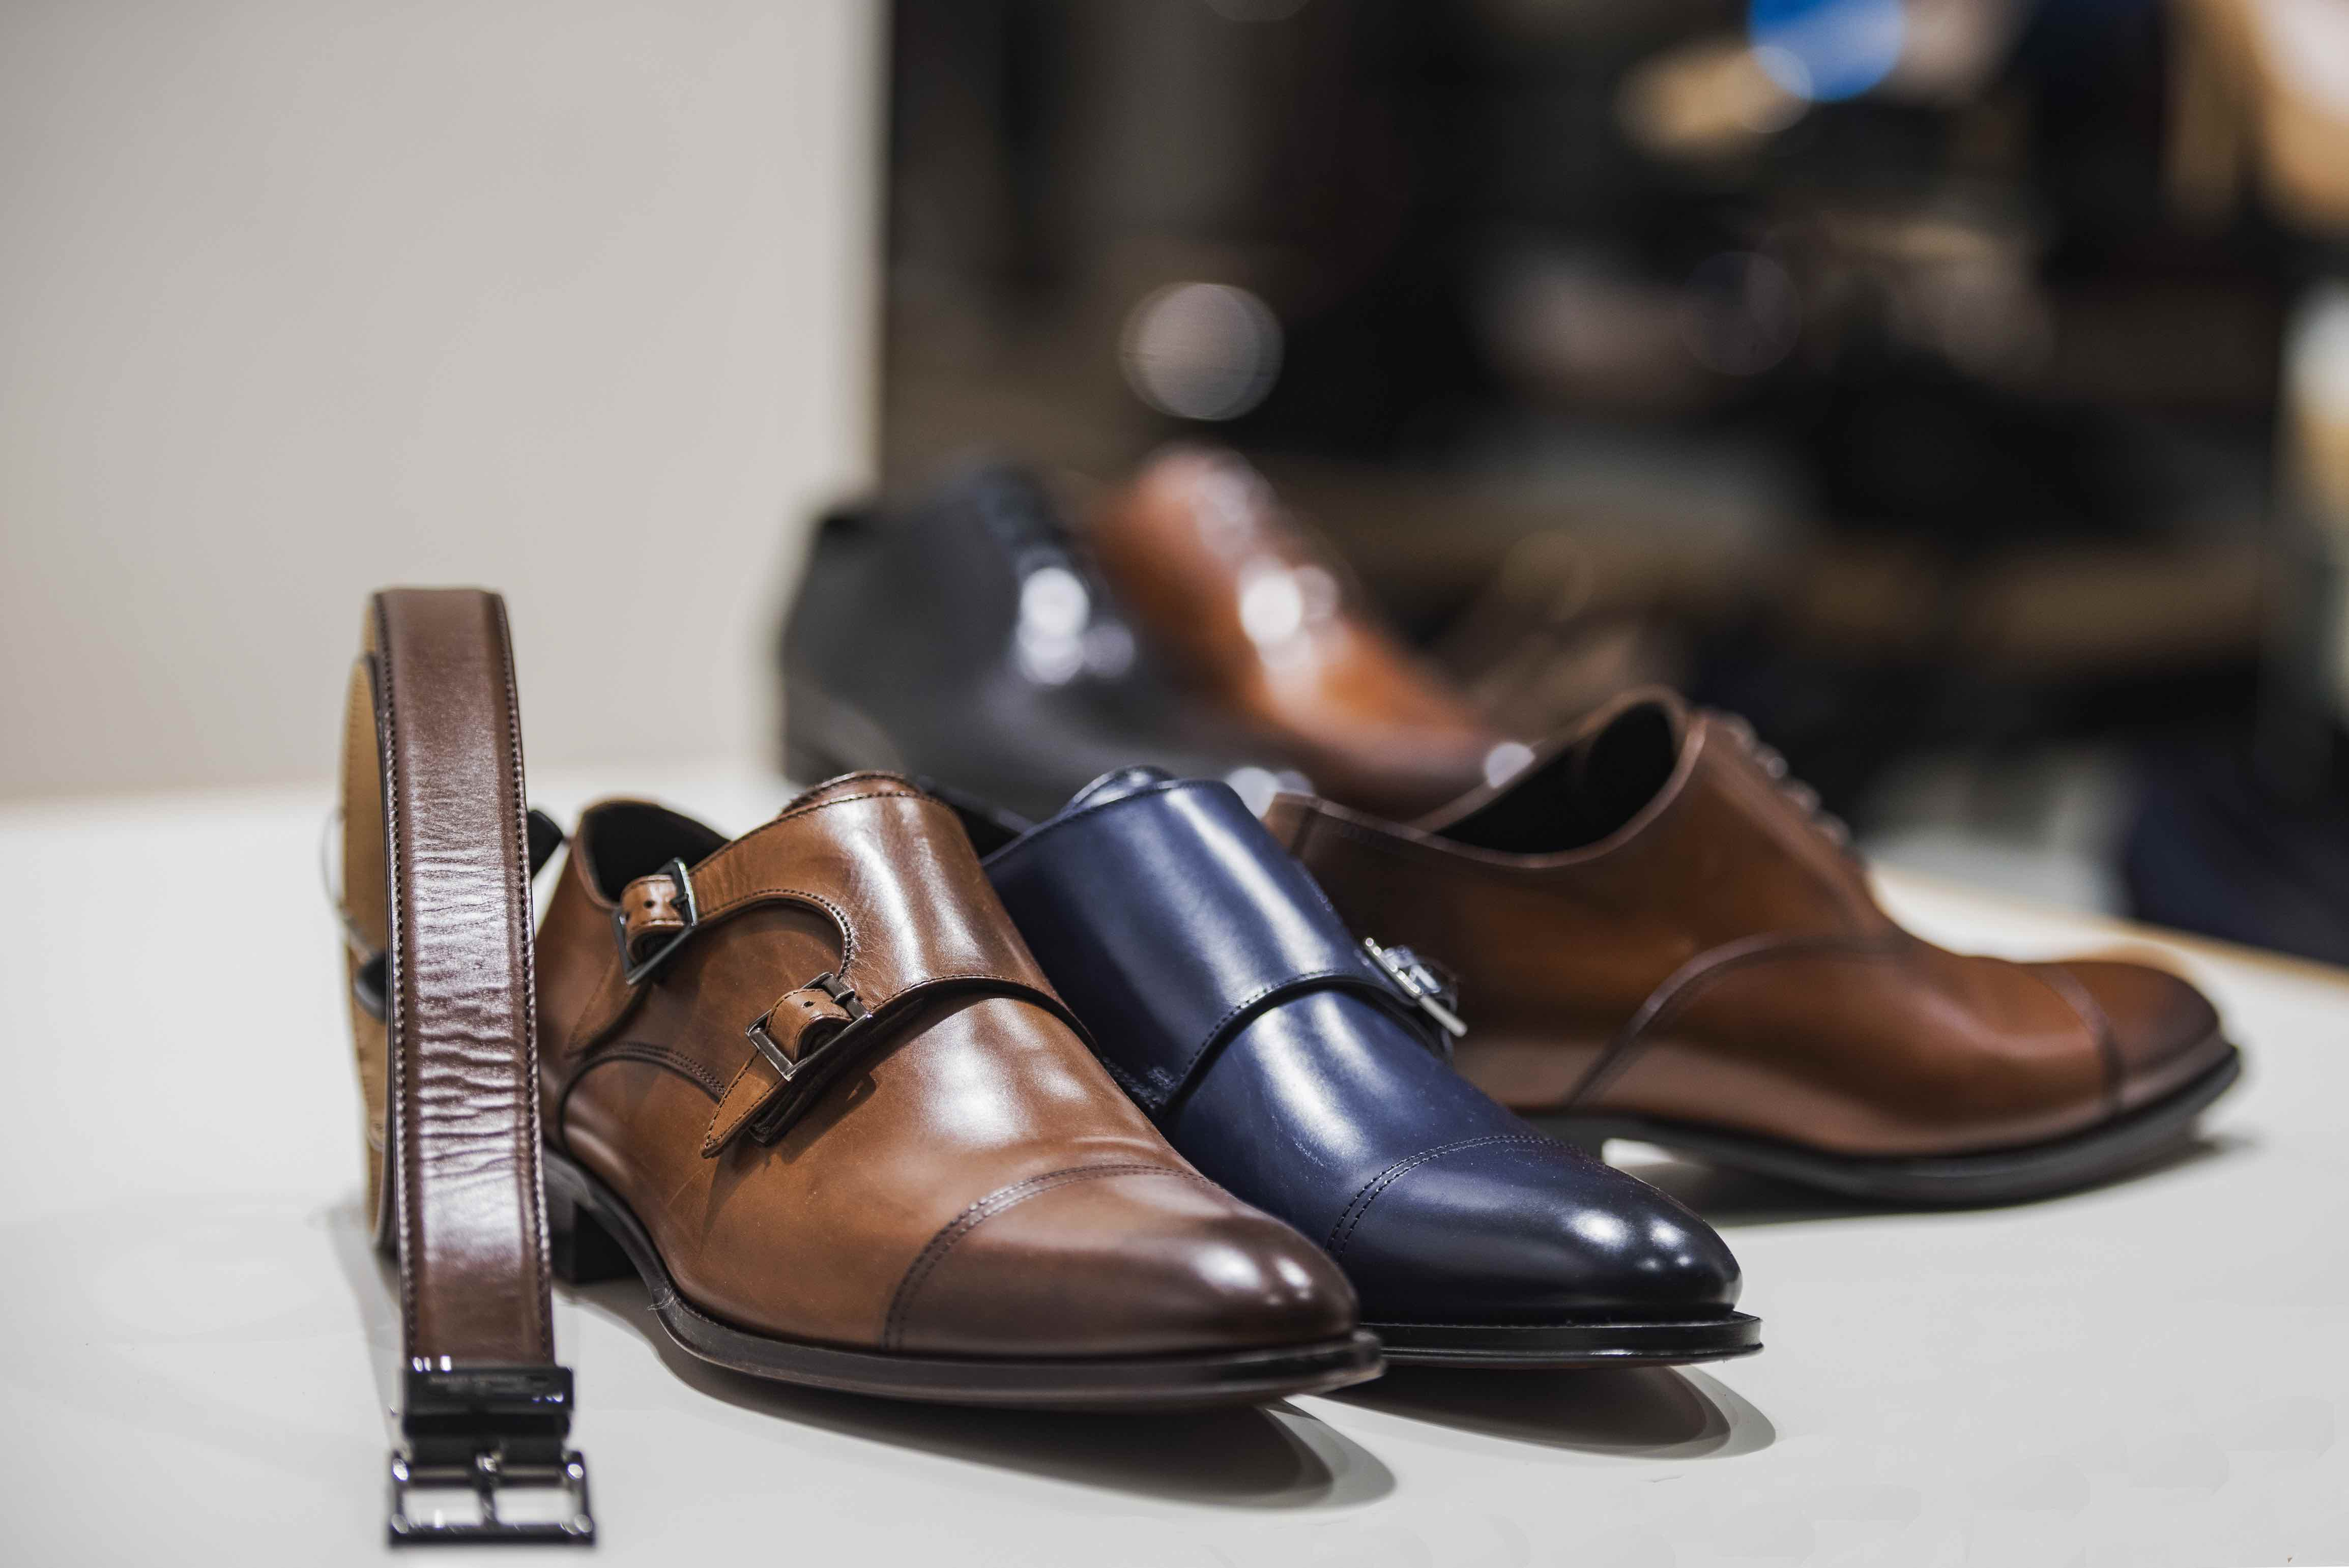 The Chicago School of Shoemaking teaches more than just how to make shoes.